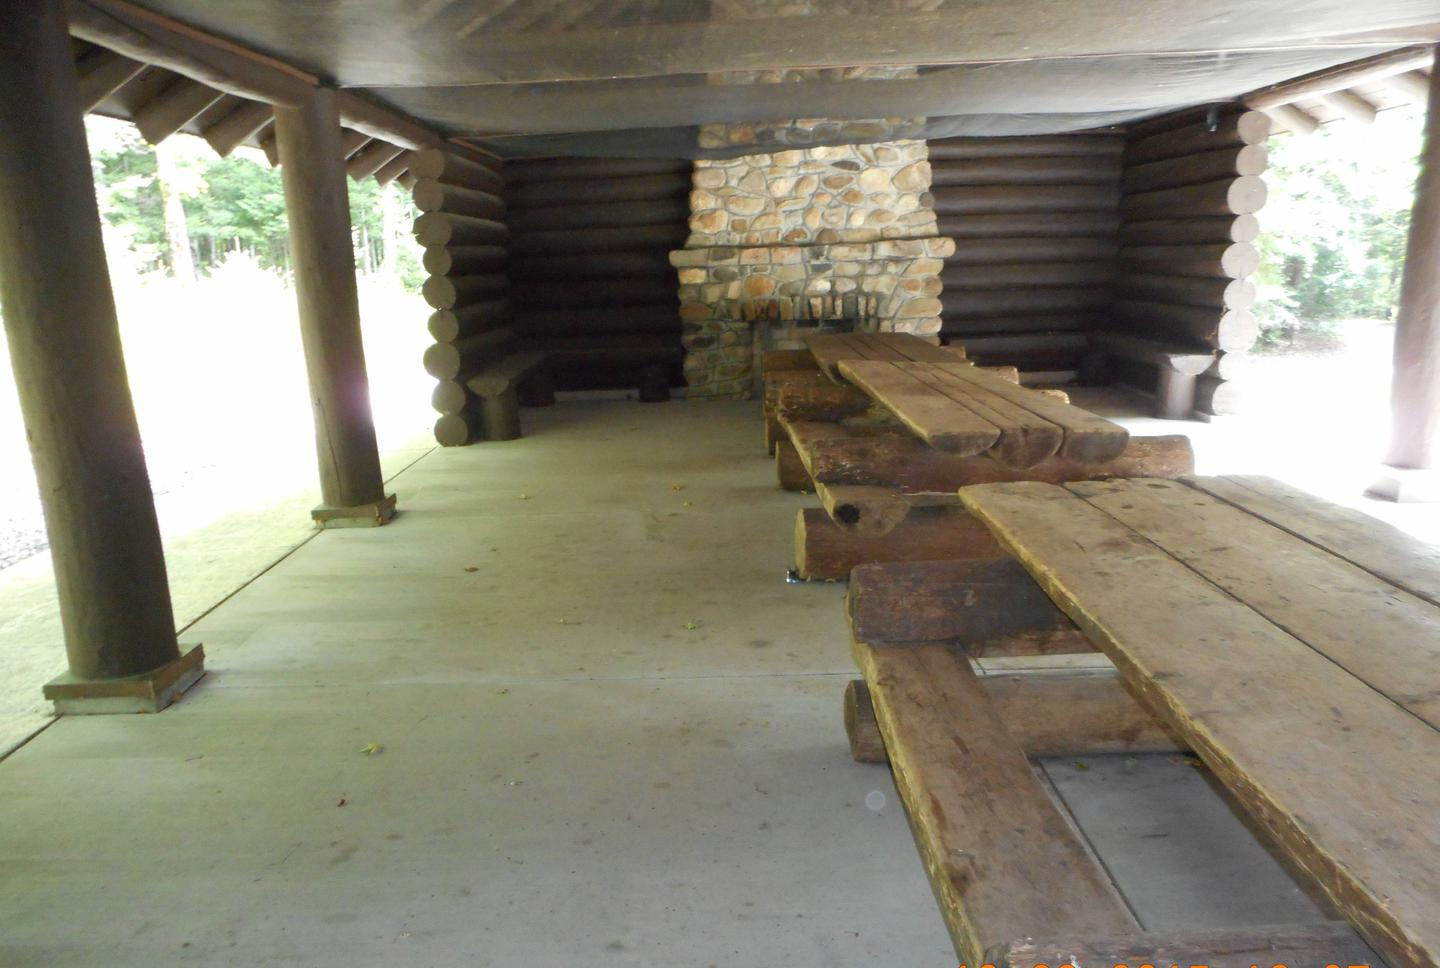 Inside of Lake Ottawa Campground Picnic ShelterLake Ottawa Campground picnic shelter with two stone fireplaces and original log picnic tables.